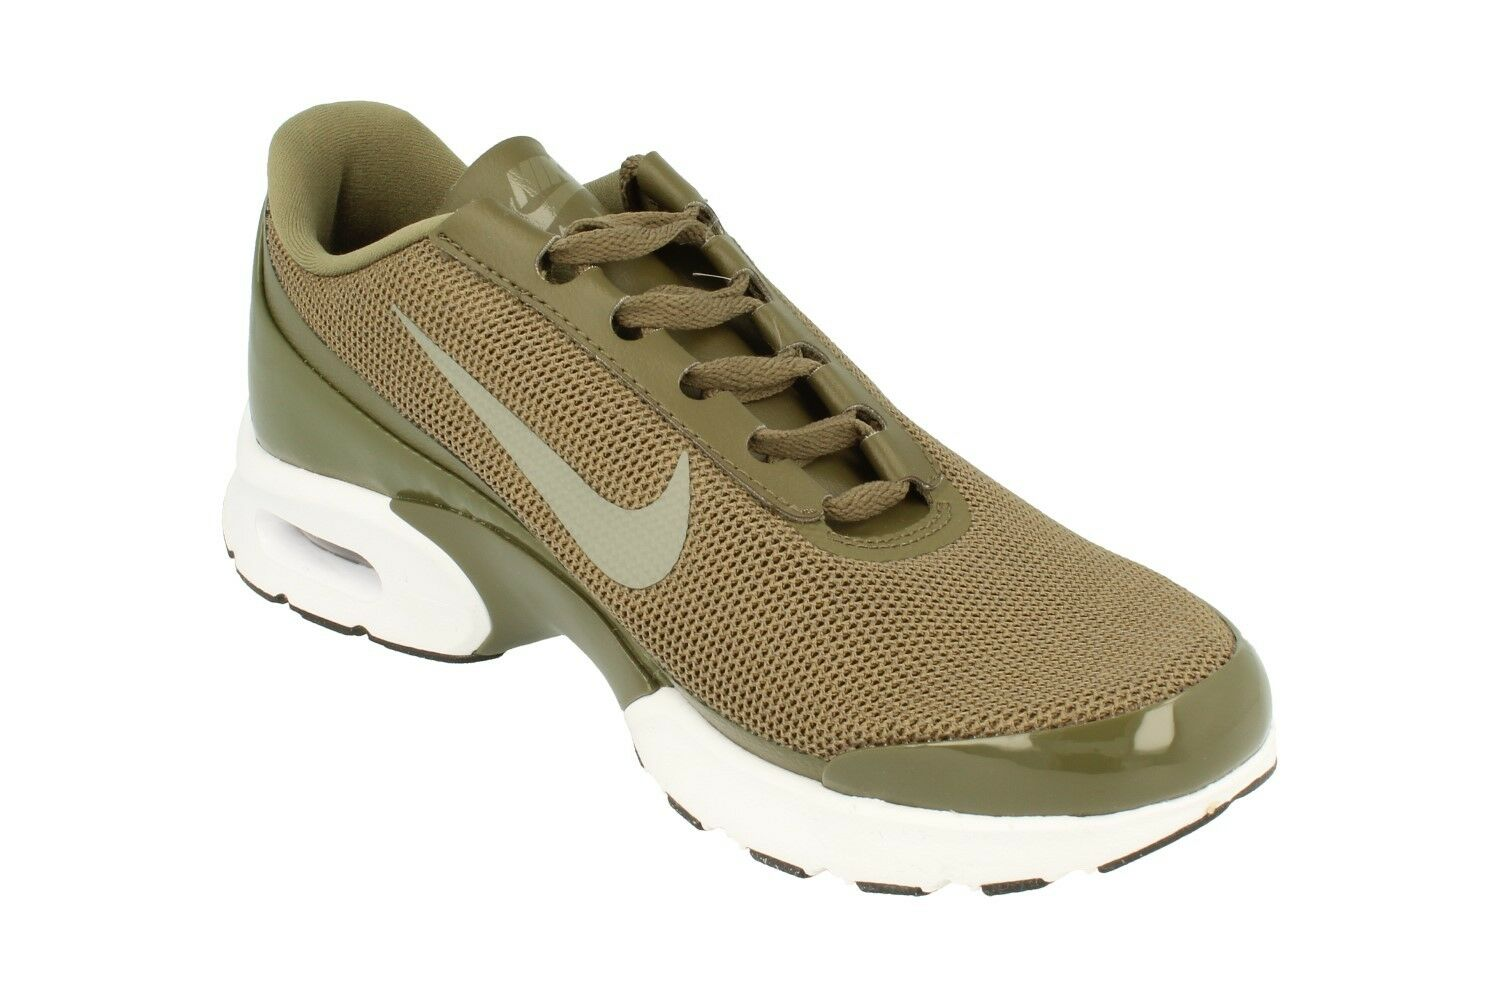 Nike Femme Air Max Jewel Running Baskets 896194 Baskets Chaussures 204